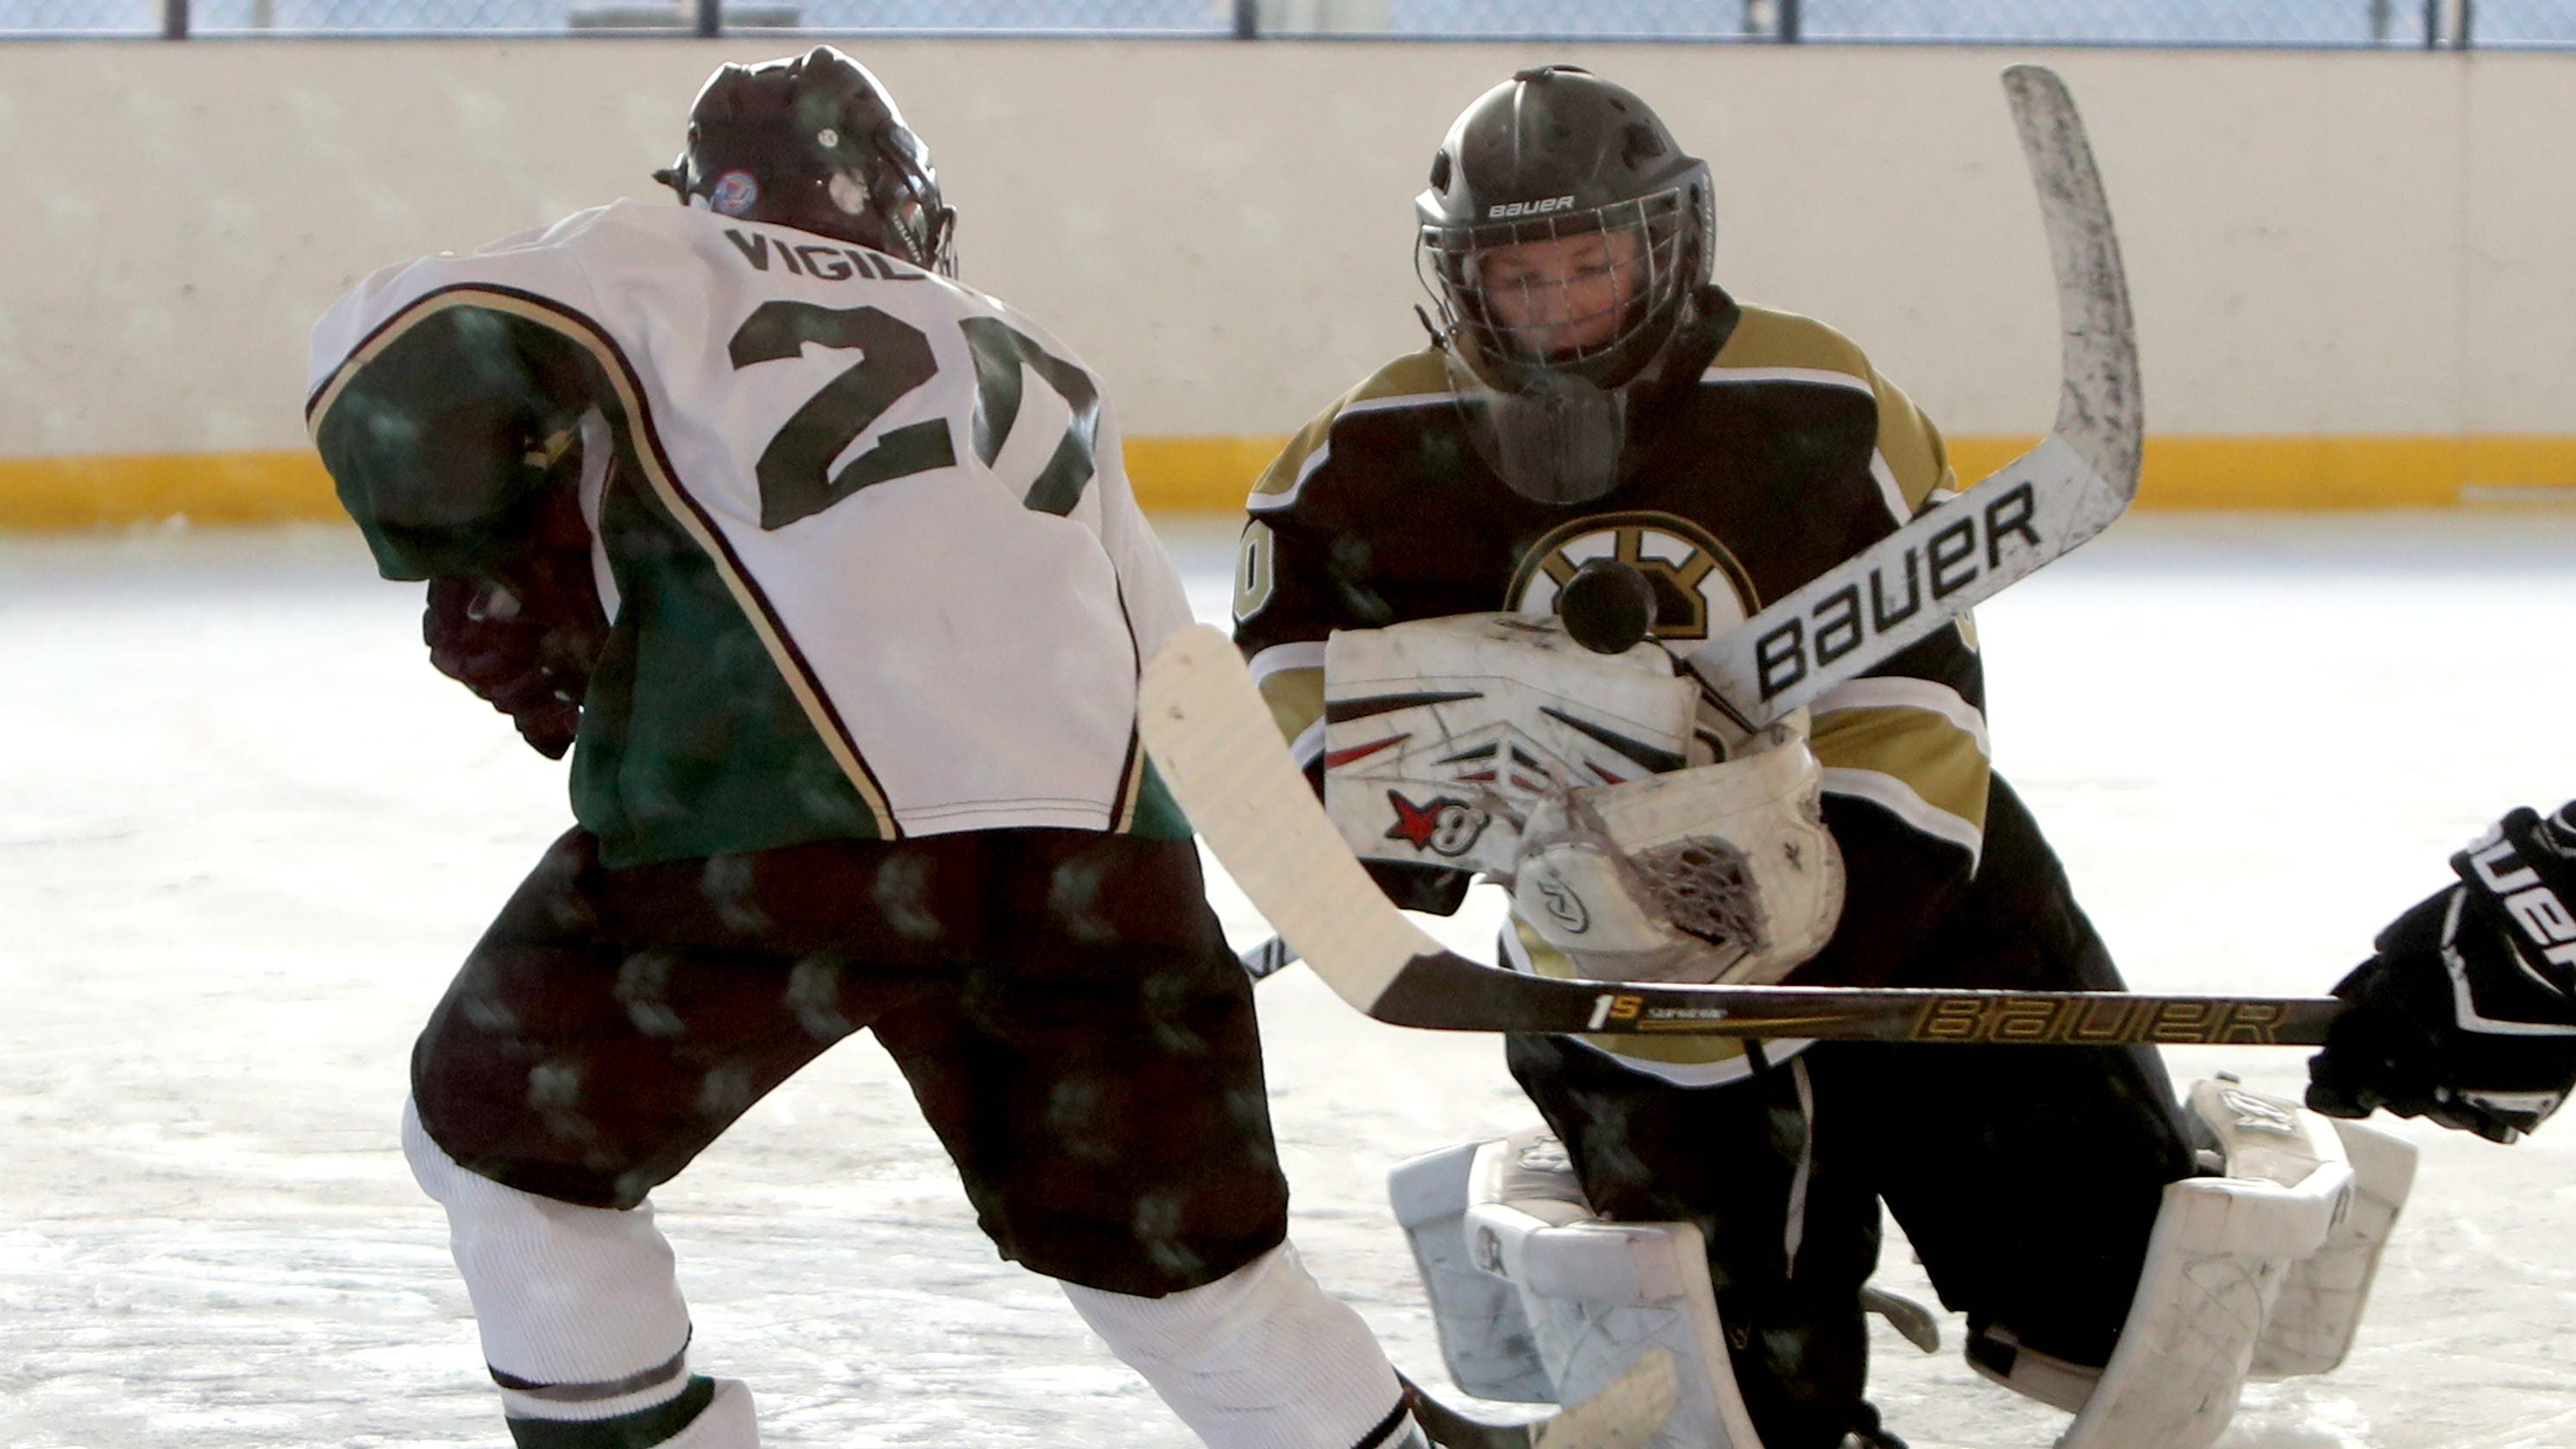 Hockey Late Goal By Clarkstown Results In A 2 2 Tie With Brewtown